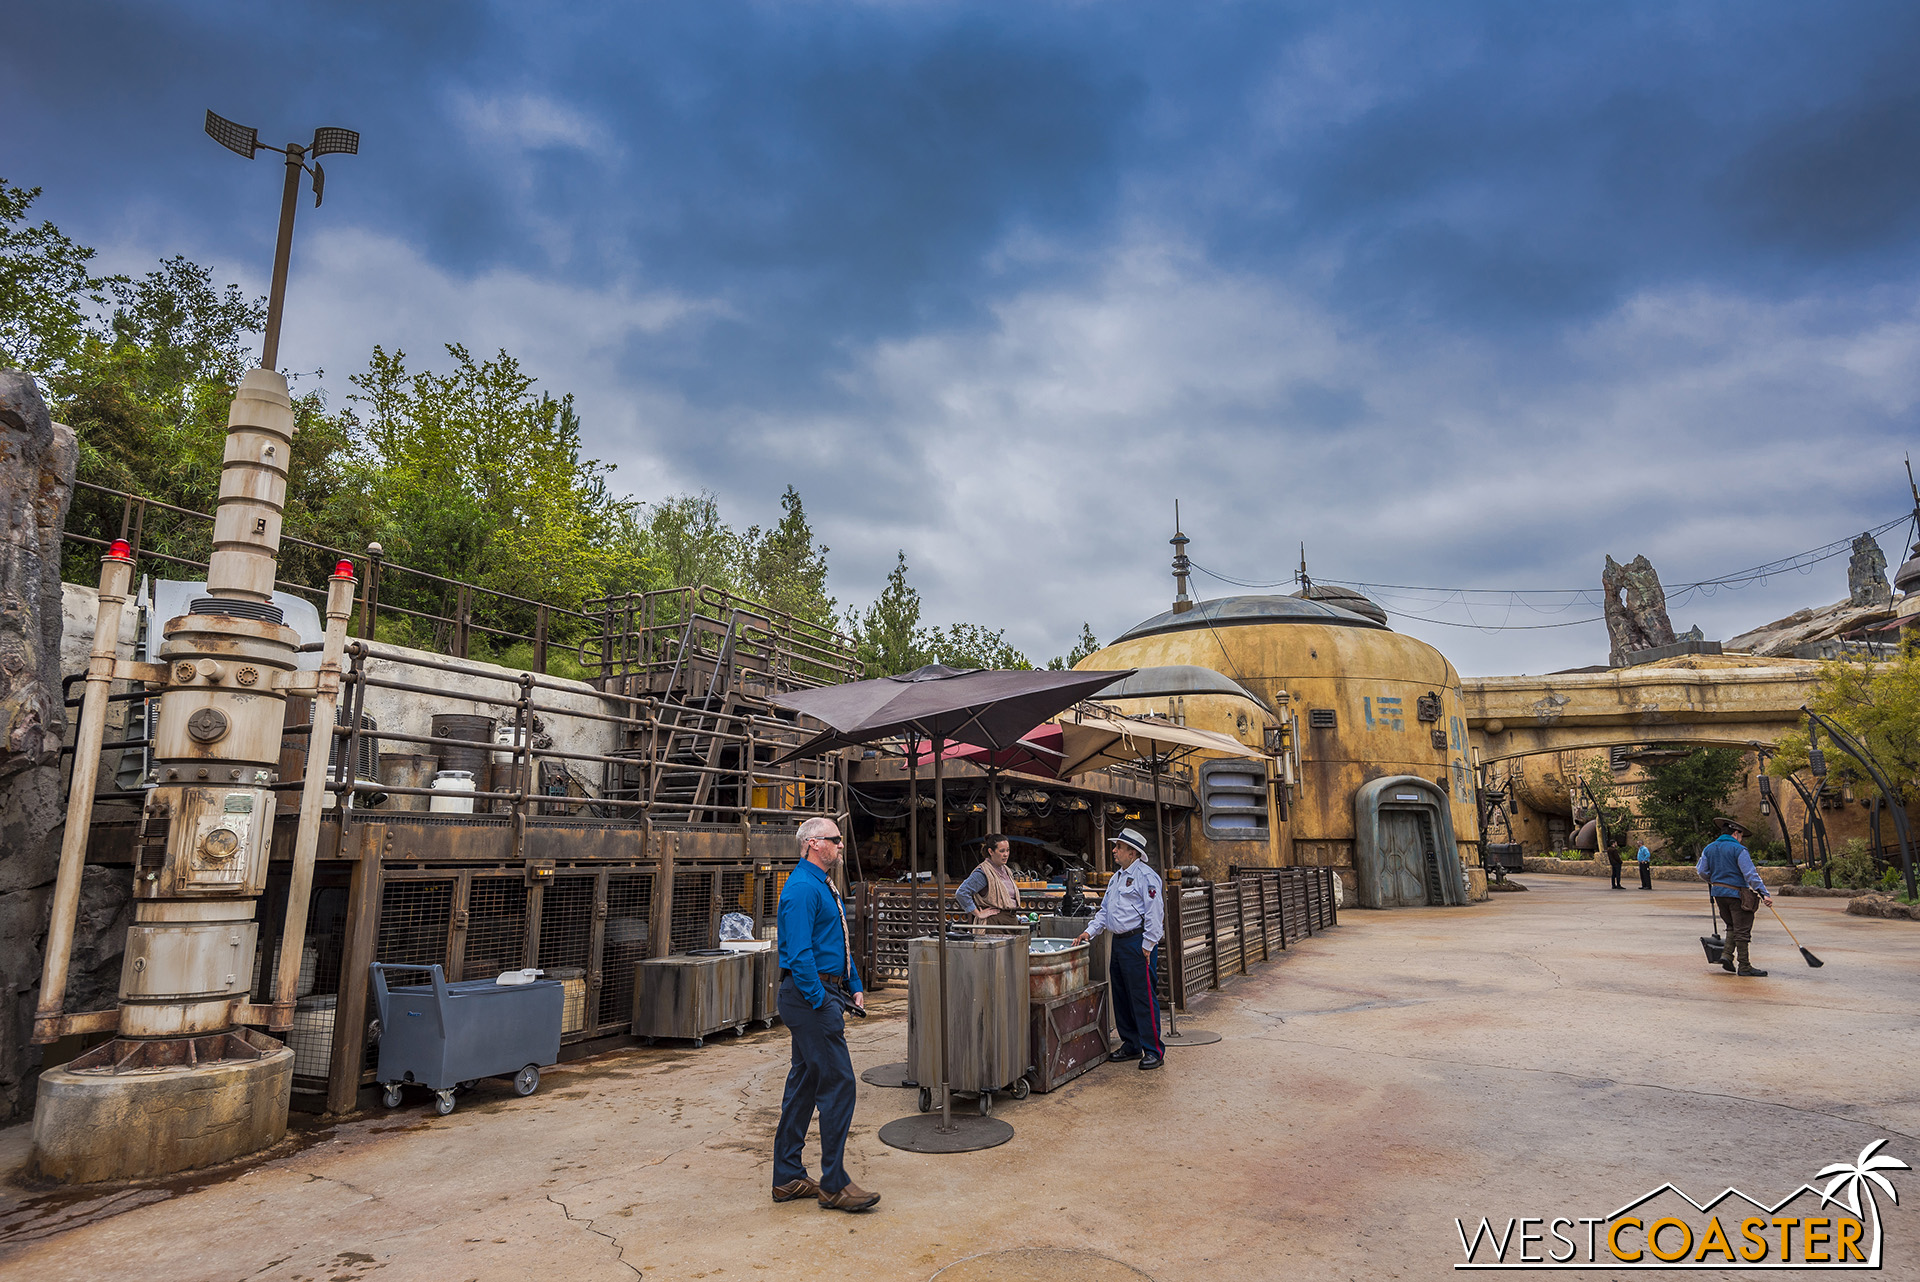 Another mini-show occurs over here, near the Frontierland entrance, across the elevated platforms.